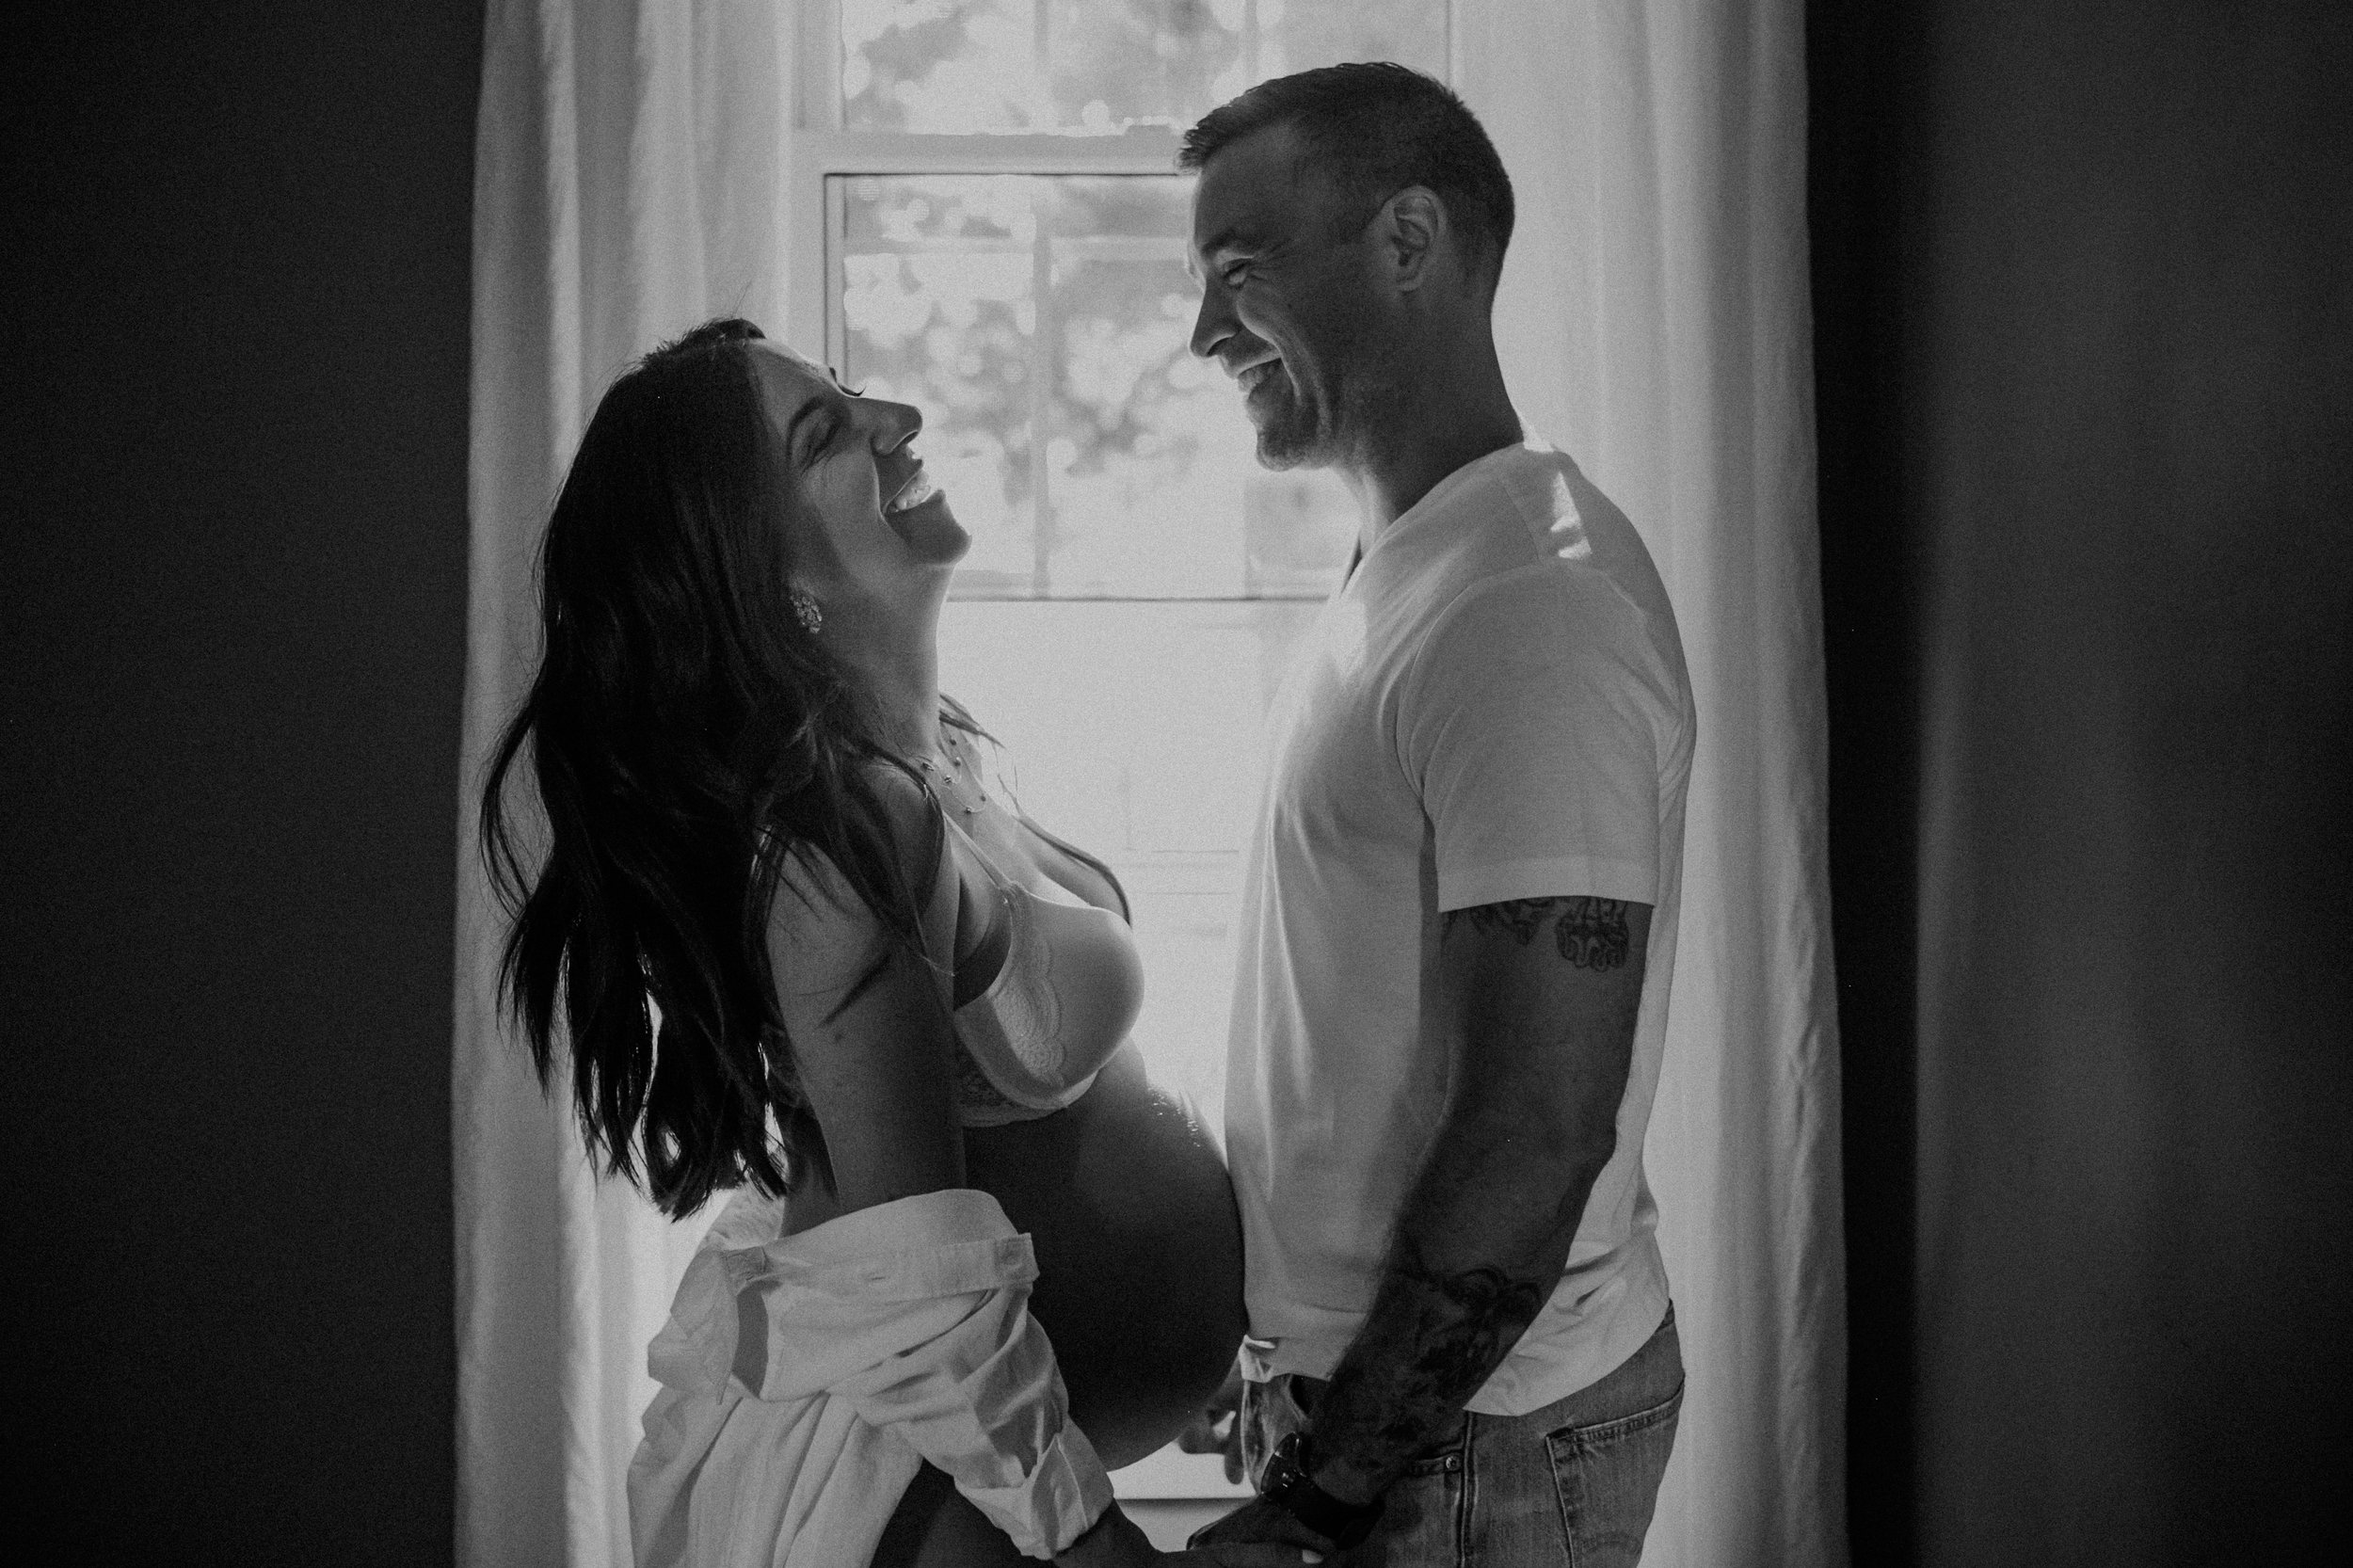 a cozy and intimate black and white image of woman pregnant with her partner during maternity photos